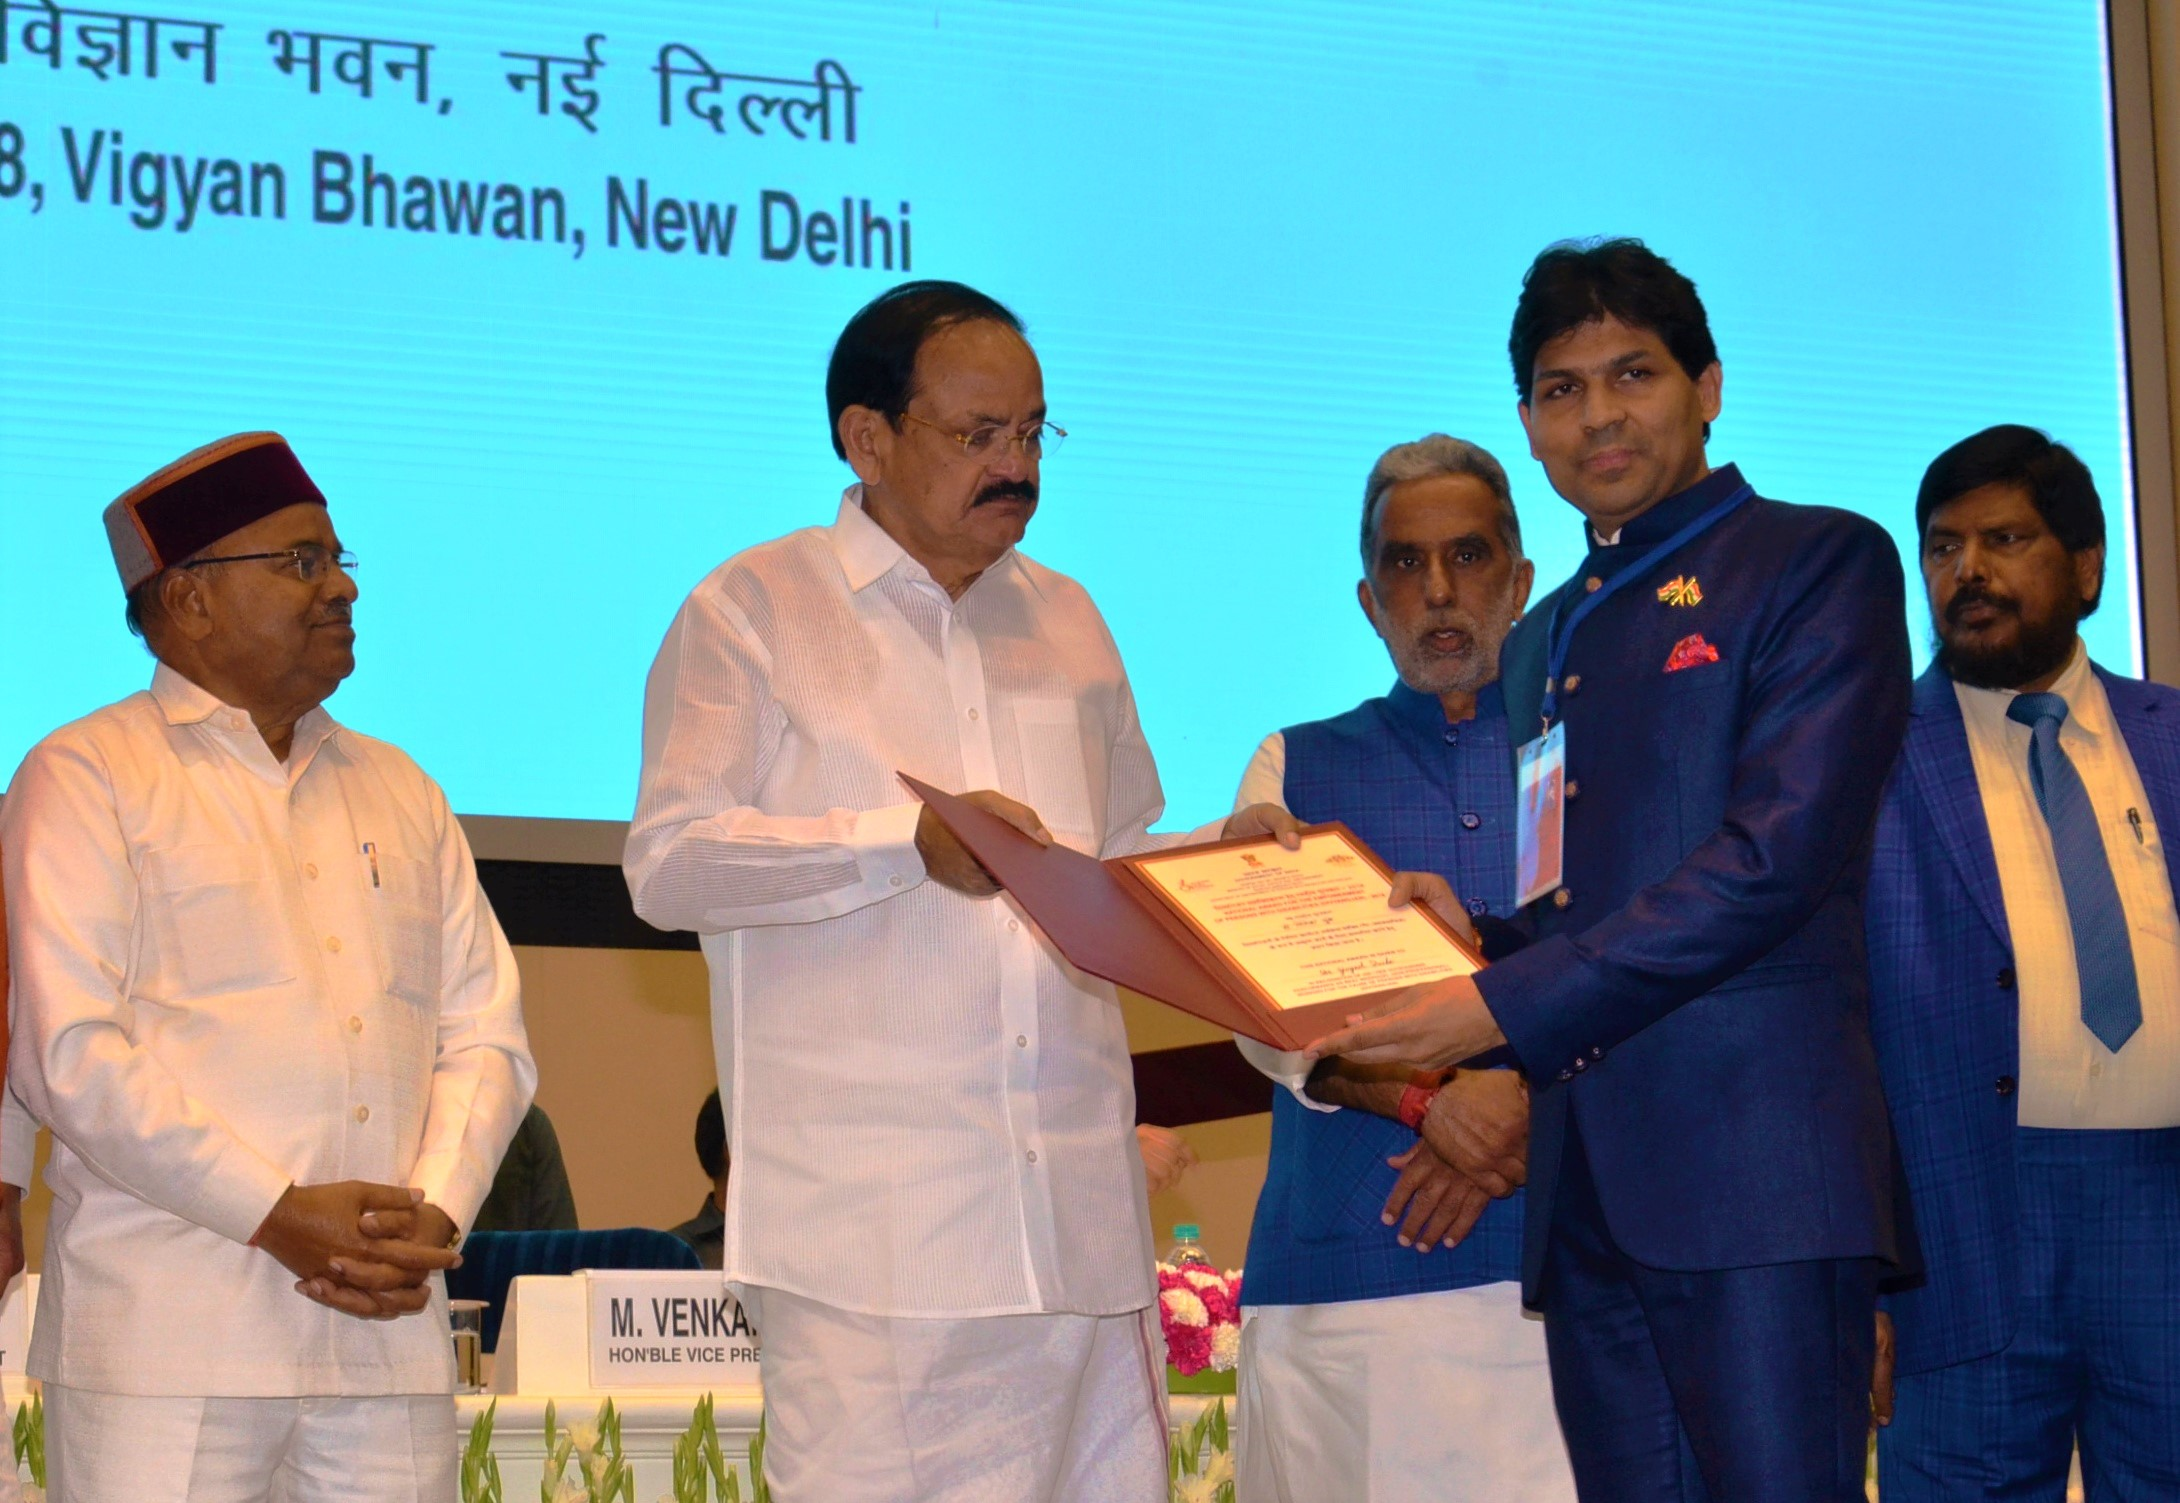 Vice President of India, Venkiah Naidu felicitated Dr